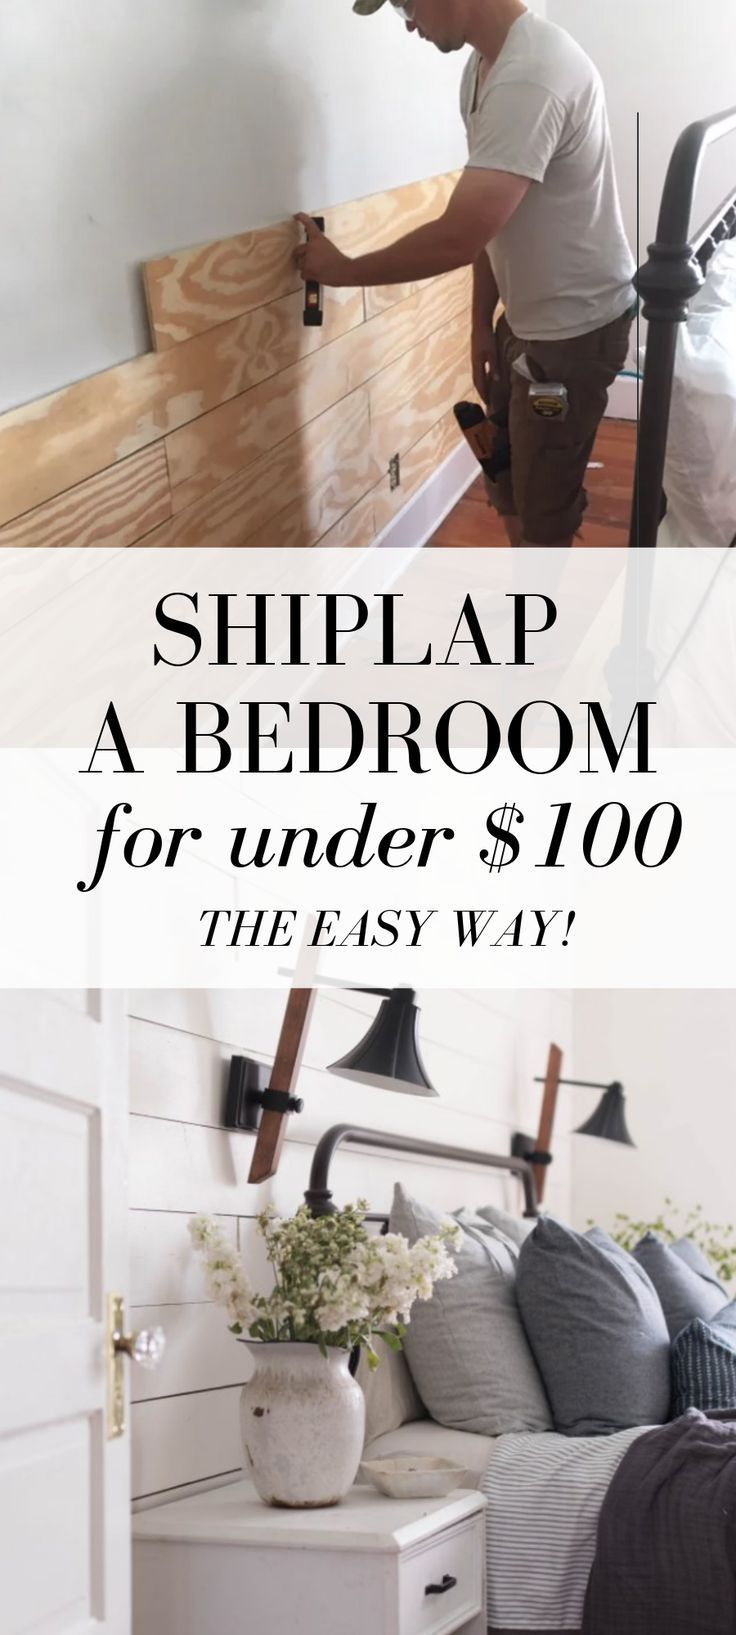 Photo of Cheap and Easy DIY Shiplap Wall,  #basementbedroomsmakeover #Cheap #DIY #Easy #Shiplap #wall